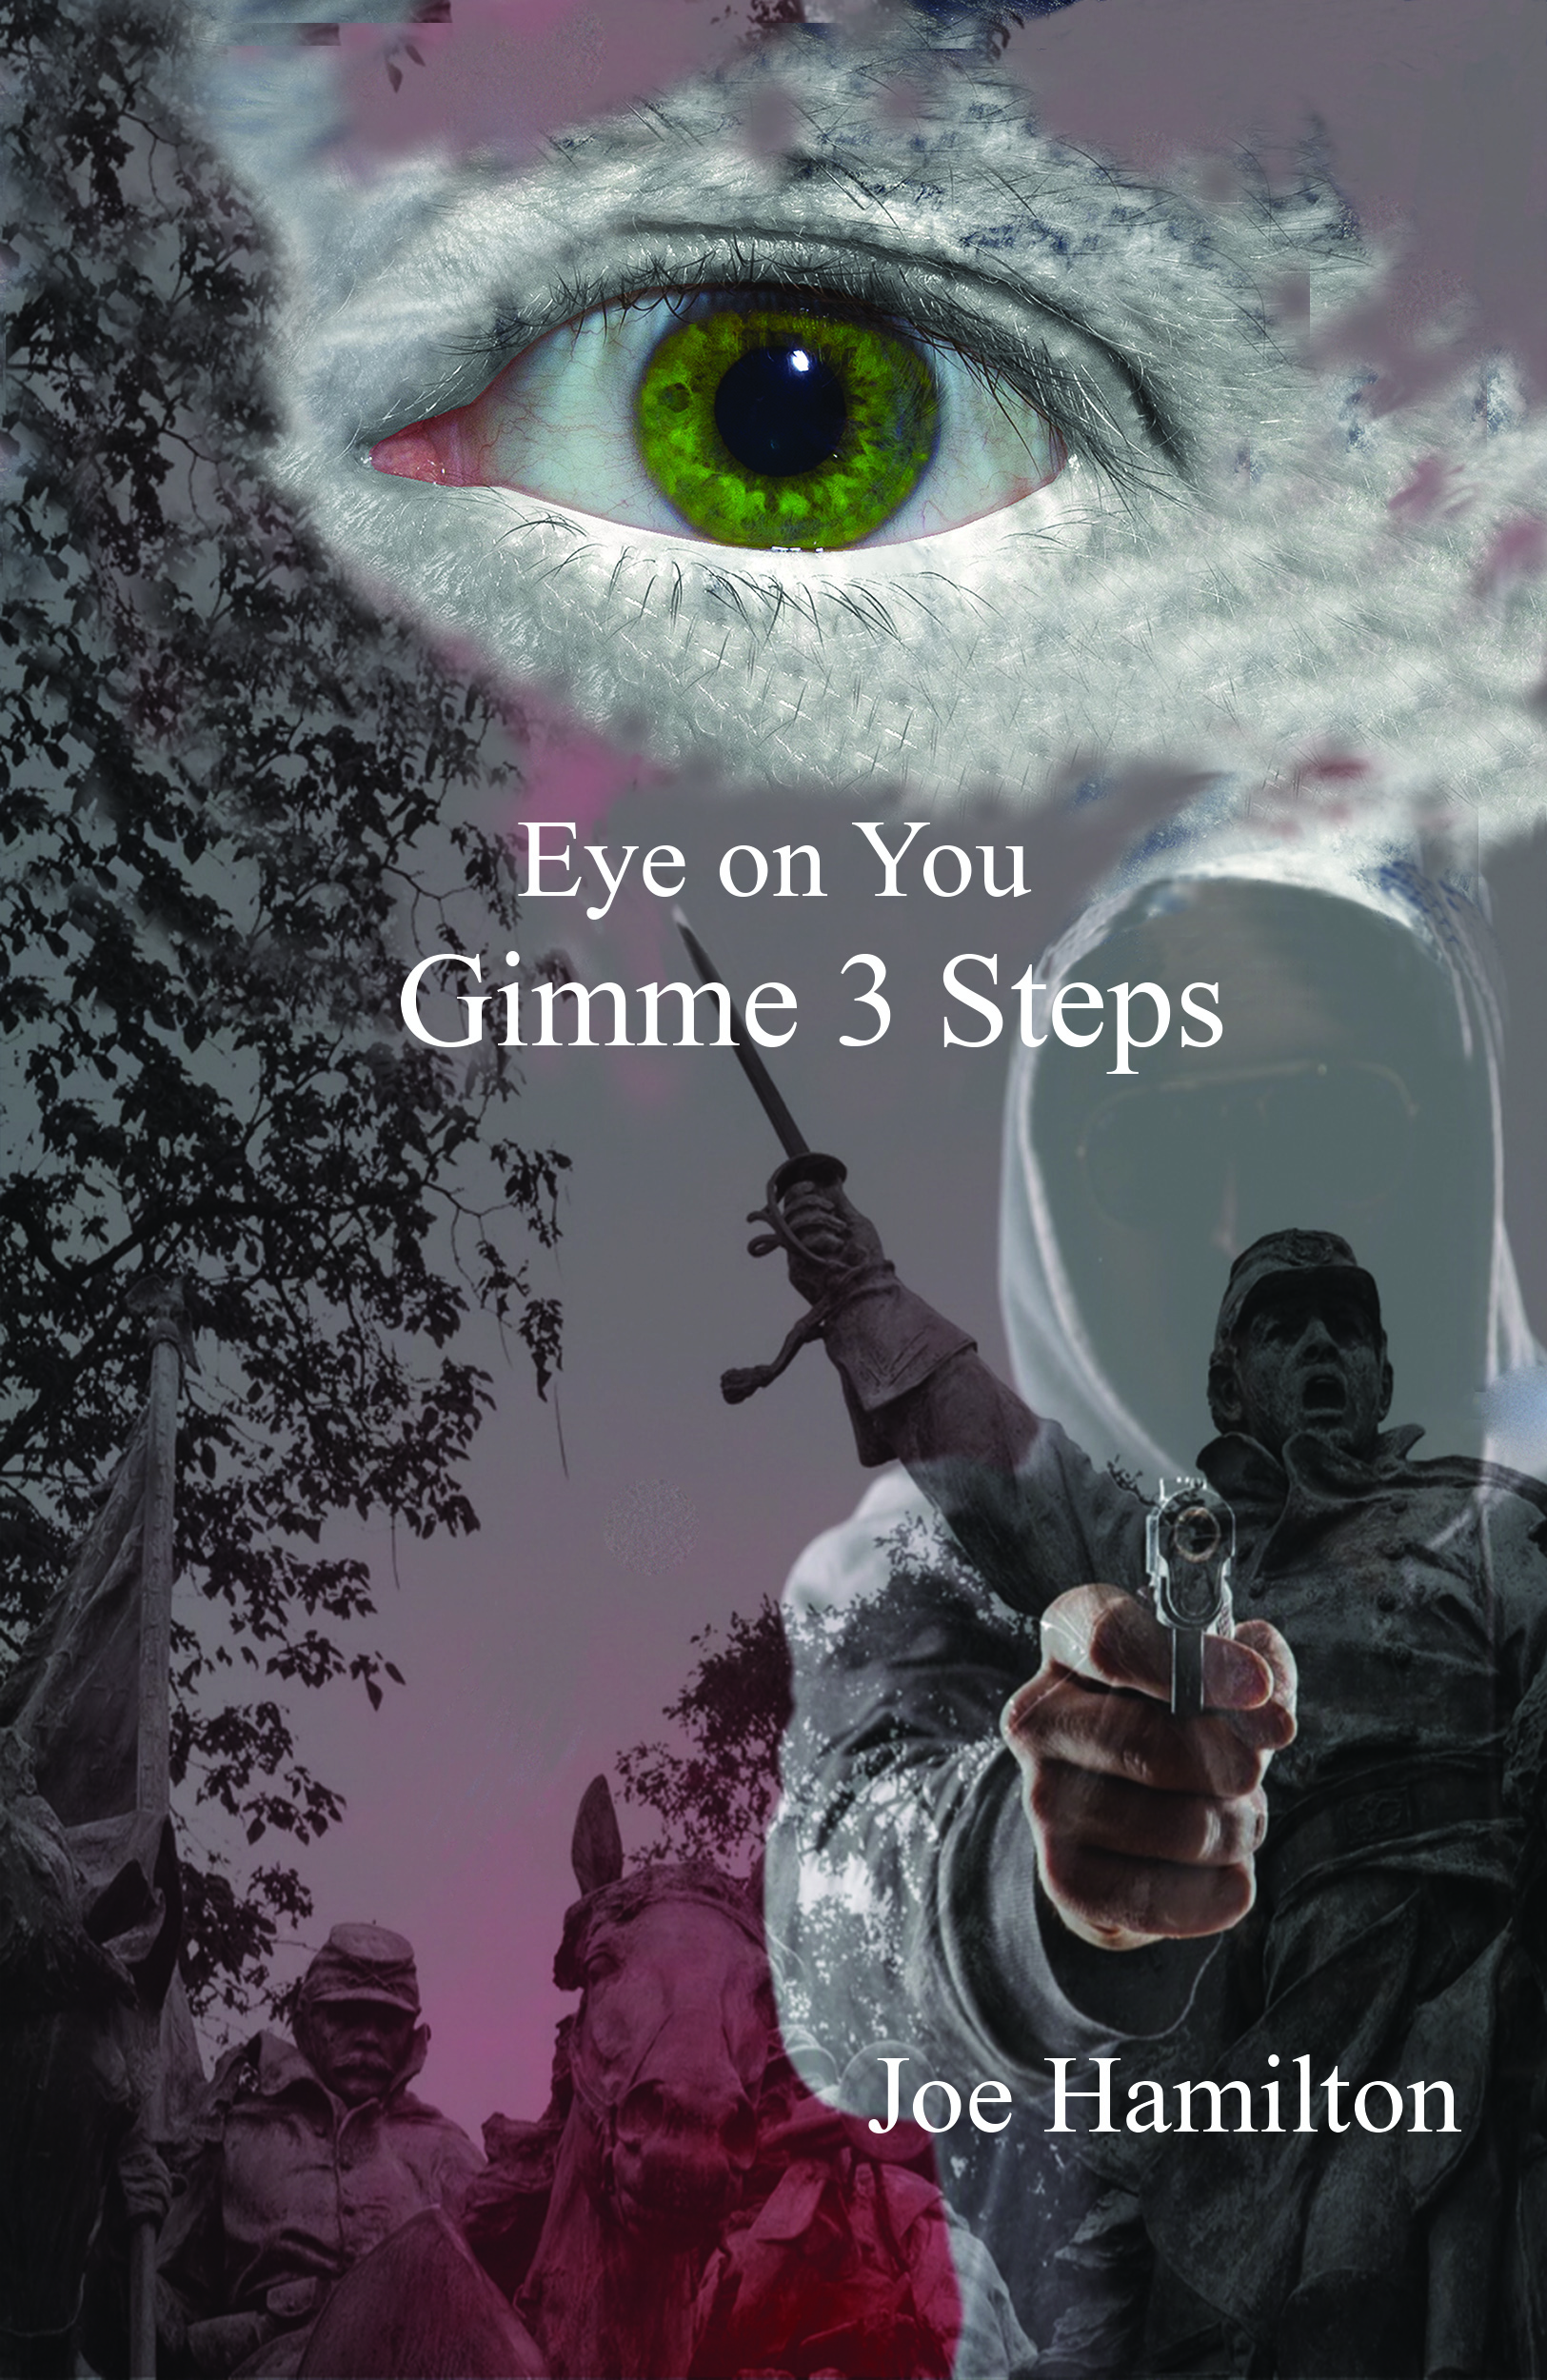 Eye on You - Gimme 3 Steps